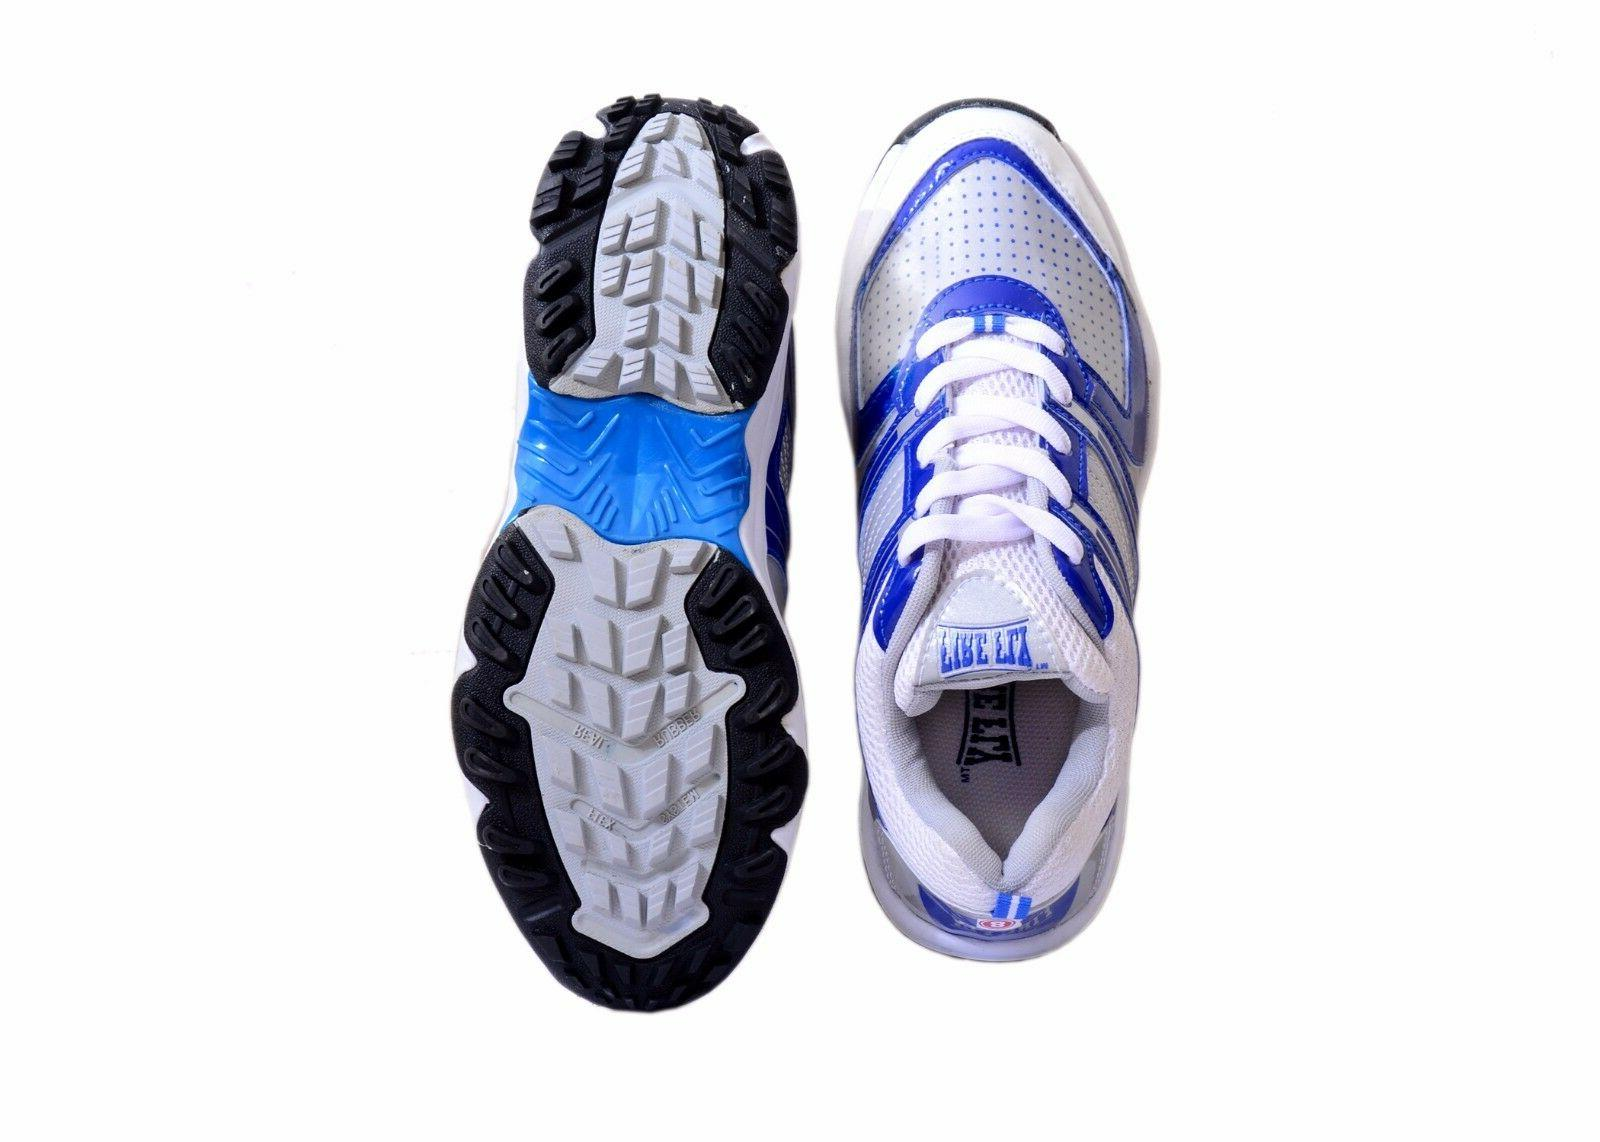 Firefly Warrior Cricket Performance Shoe Blue Sports Trainer